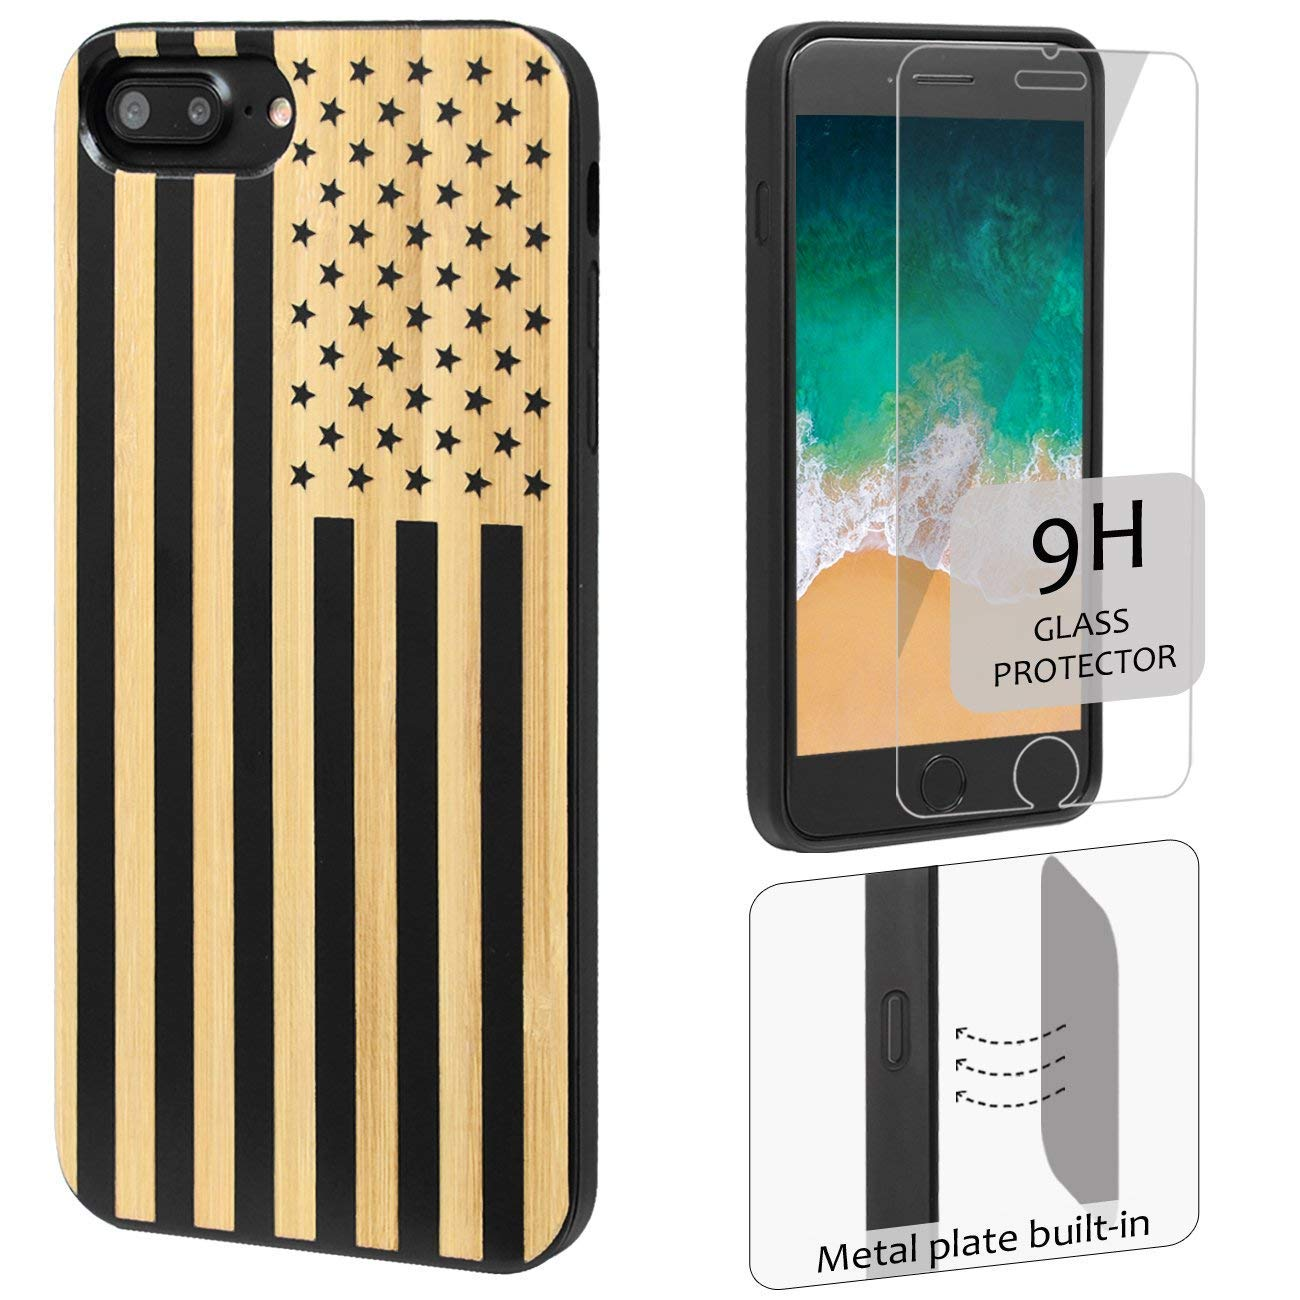 iProductsUS Wood Phone Case Compatible with iPhone 8 7 Plus (ONLY) and Screen Protector-Black Bamboo Phone Cases Engraved US Flag,Built-in Metal Plate,TPU Rubber Protective Shockproof Covers (5.5'')